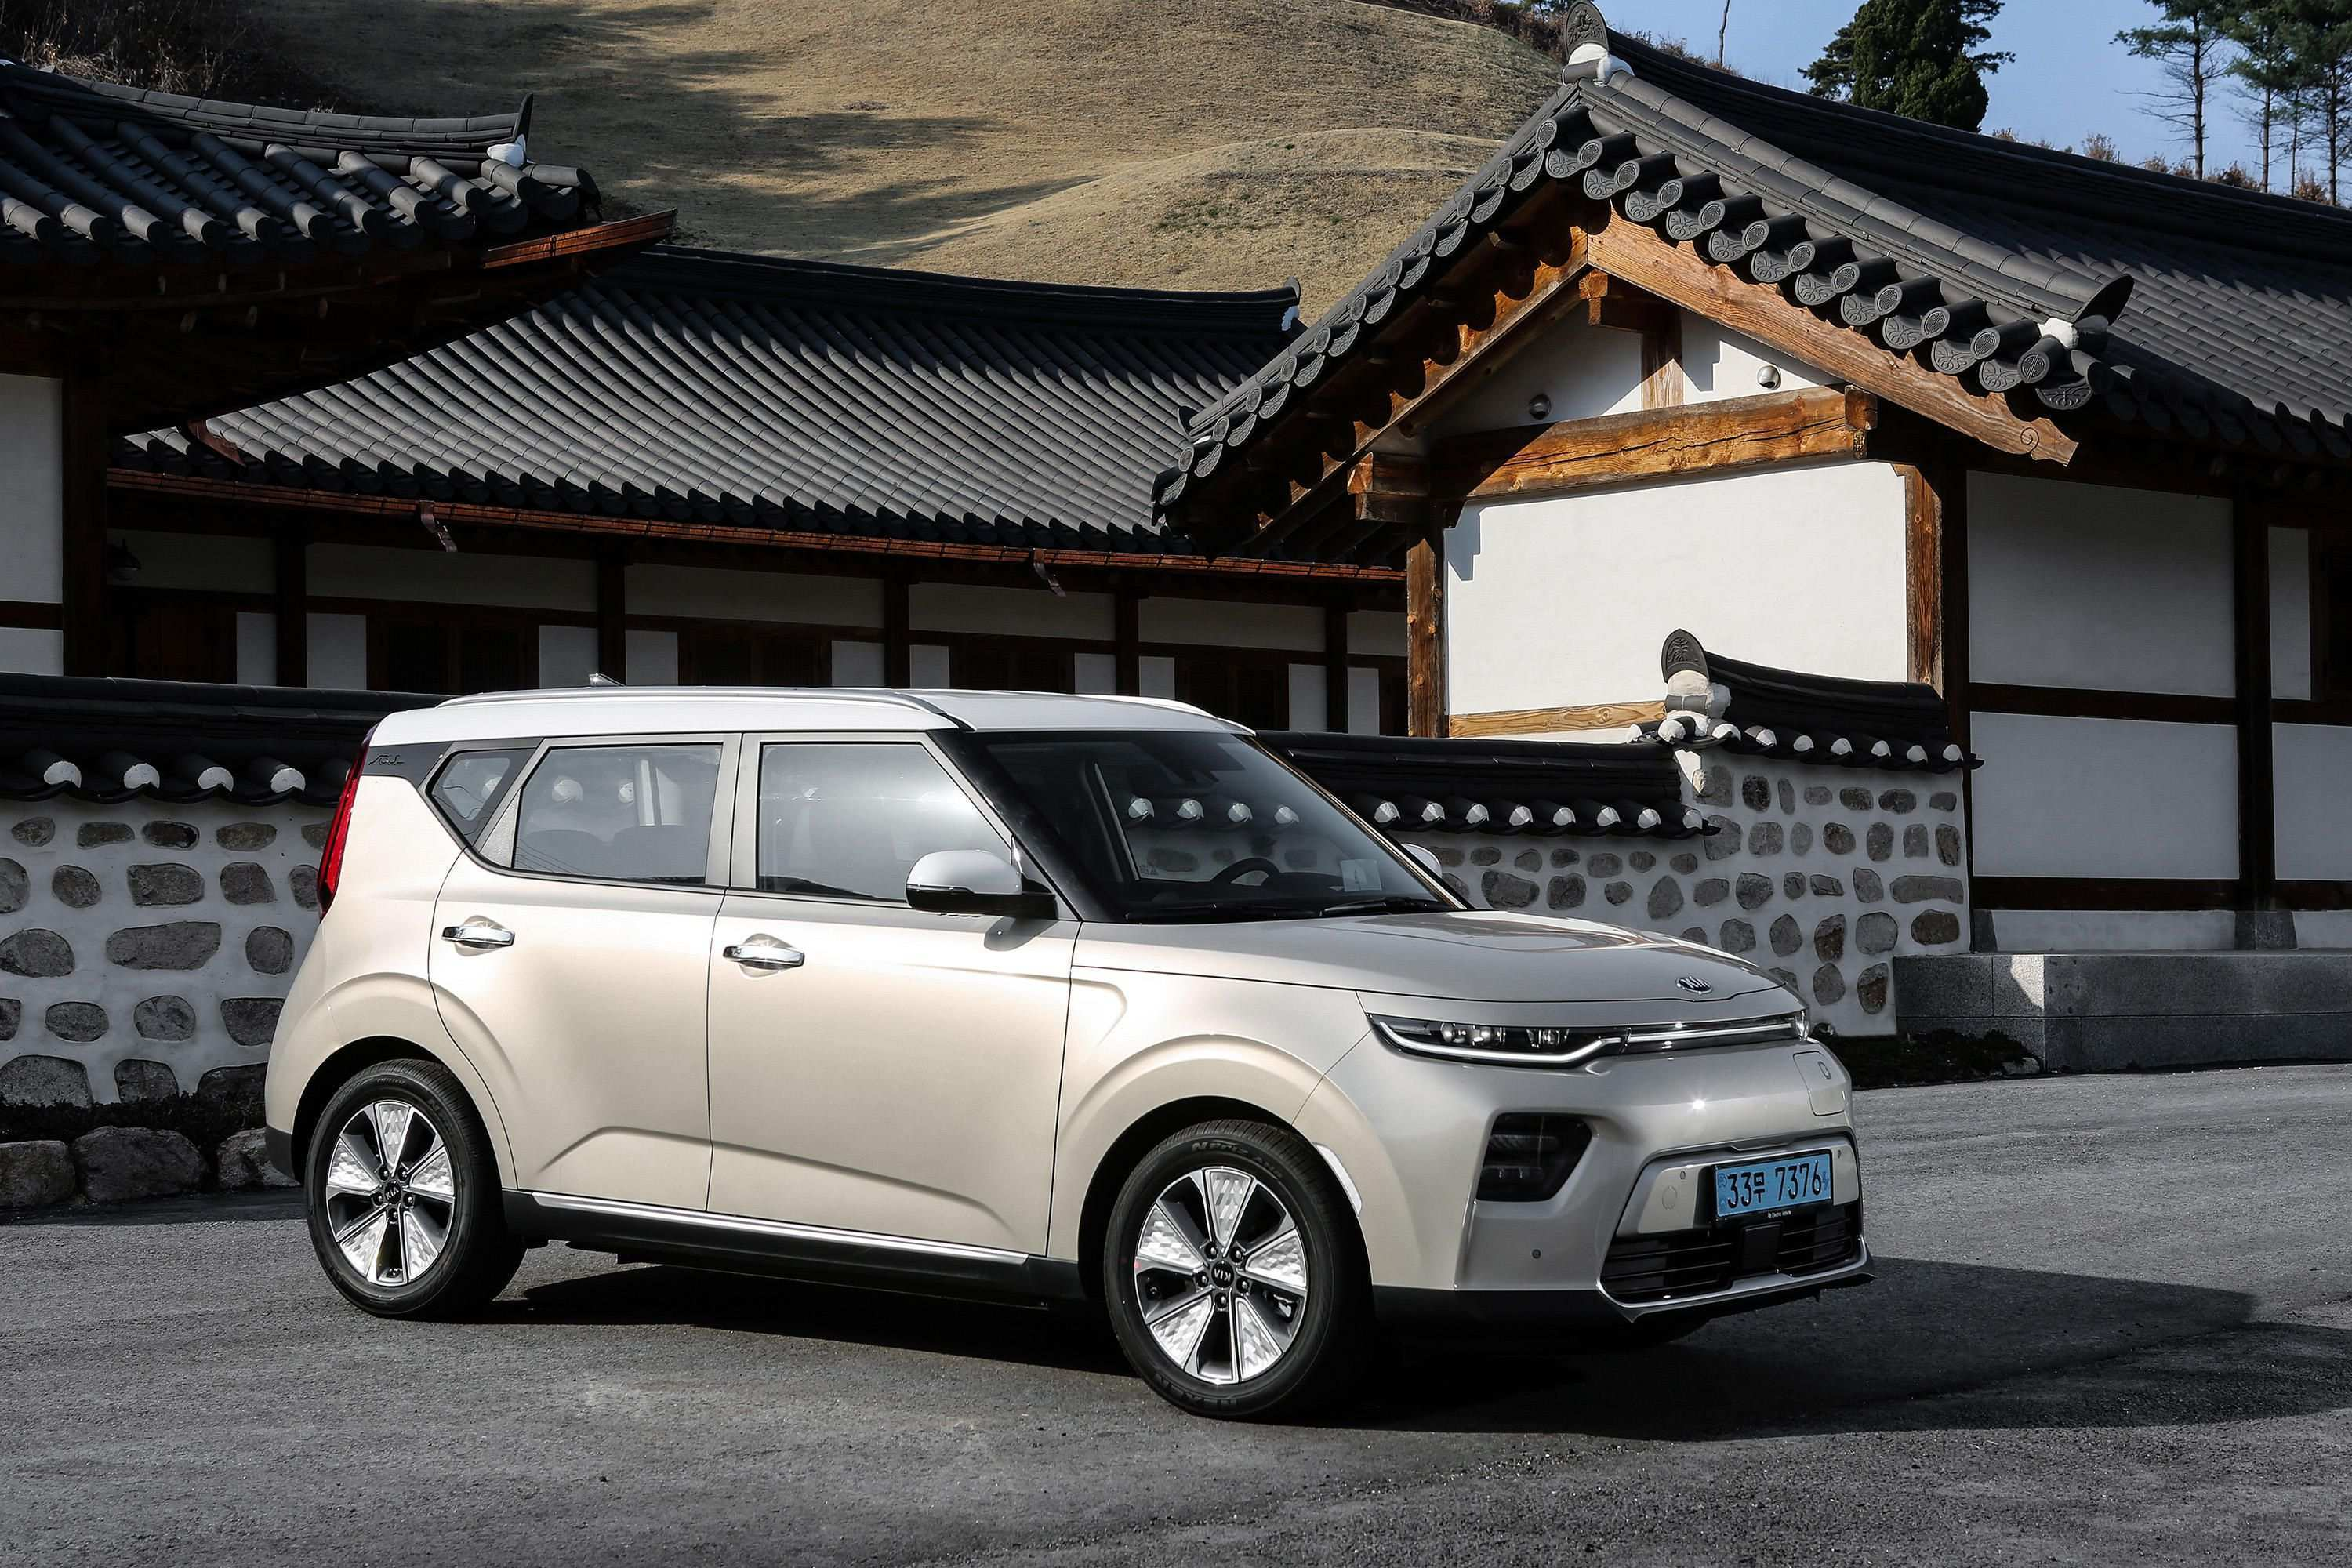 53 New 2020 Kia Soul Ev Availability Configurations